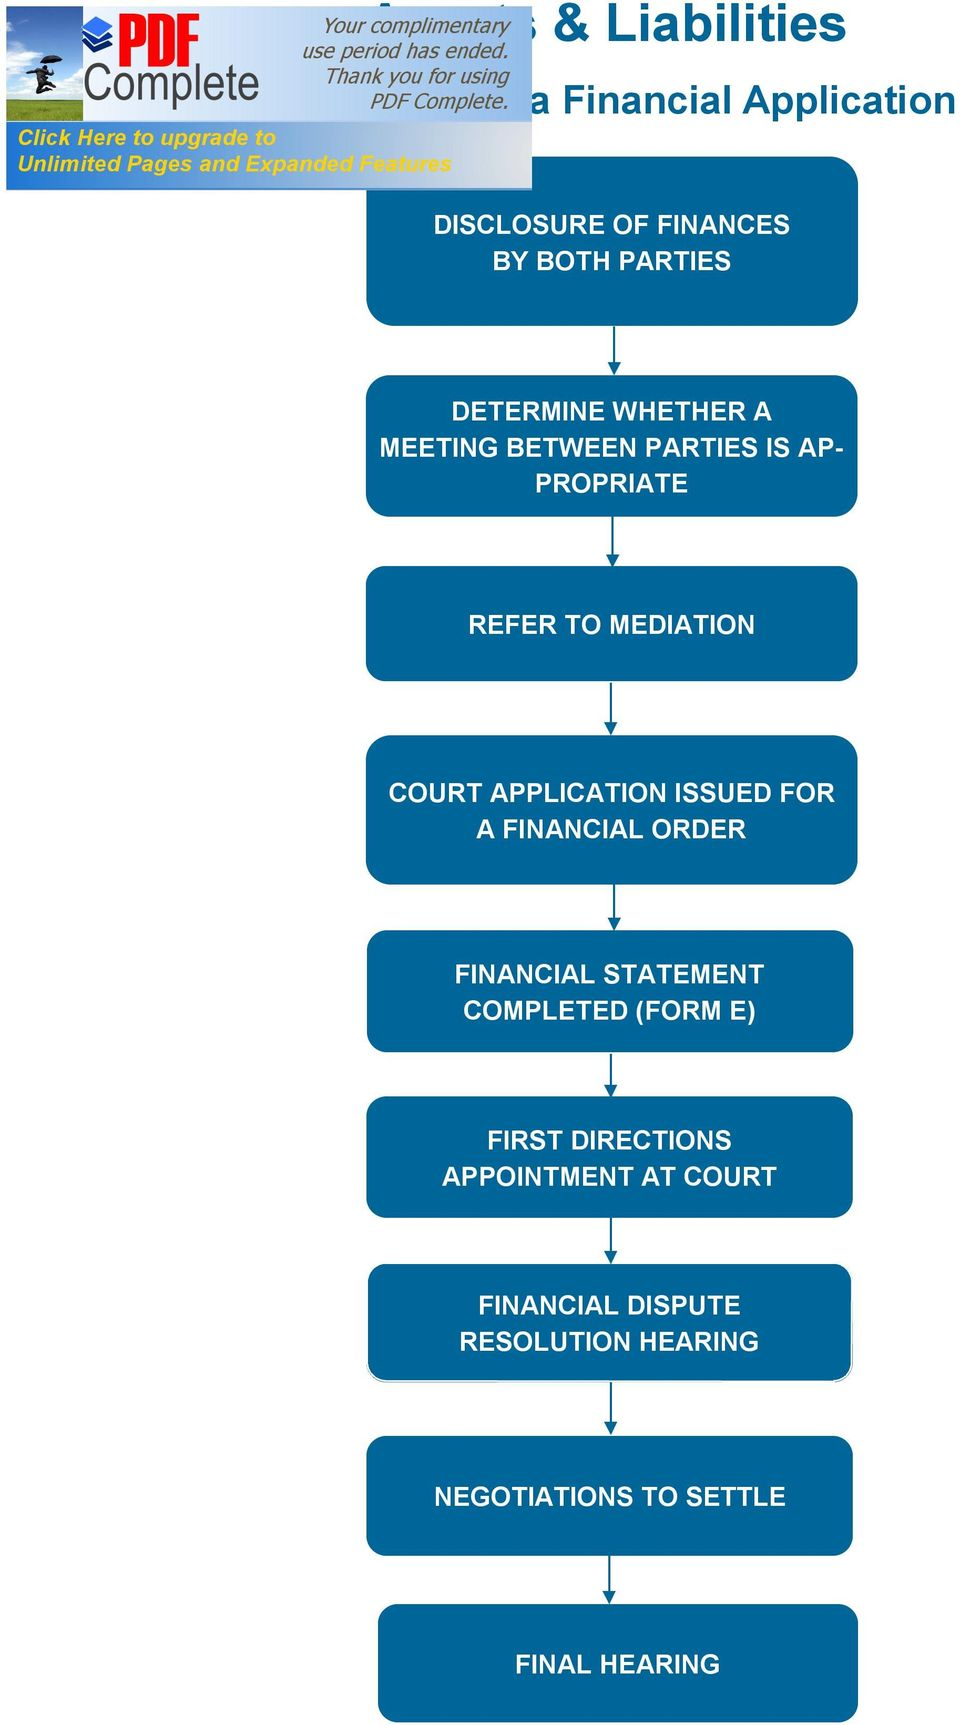 APPLICATION ISSUED FOR A FINANCIAL ORDER FINANCIAL STATEMENT COMPLETED (FORM E) FIRST